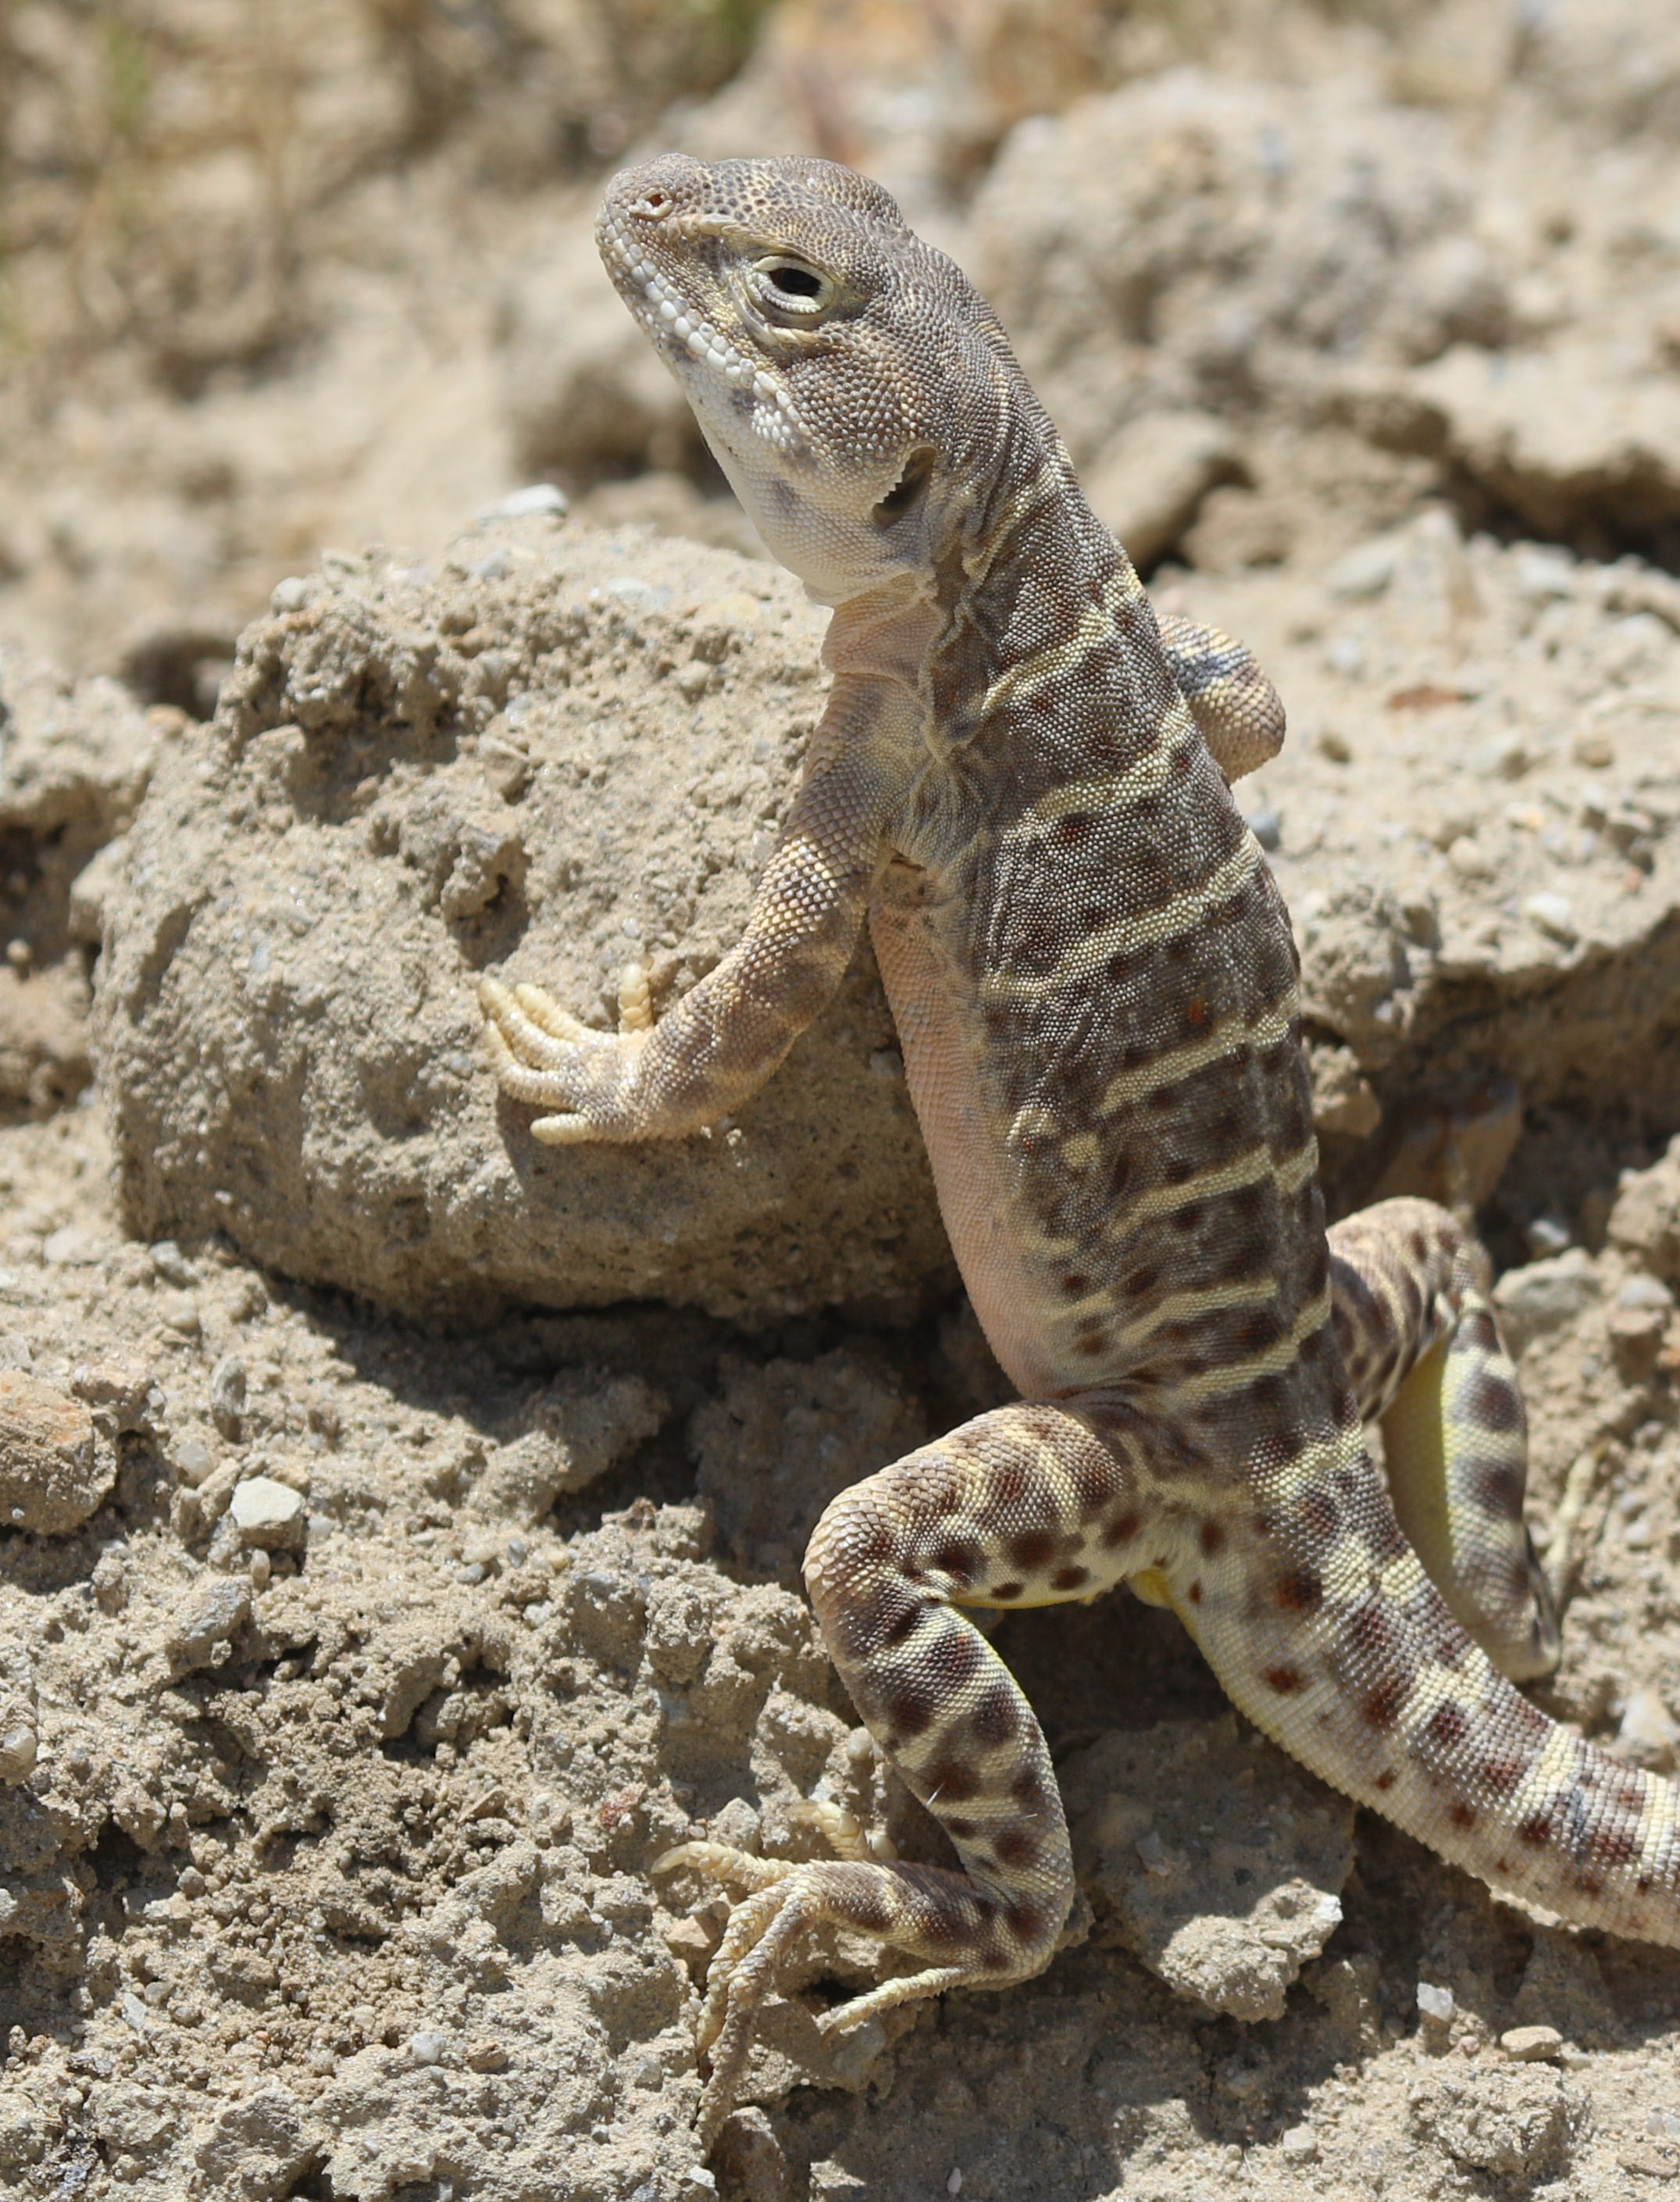 Detection Dogs on the Trail of Endangered Lizards